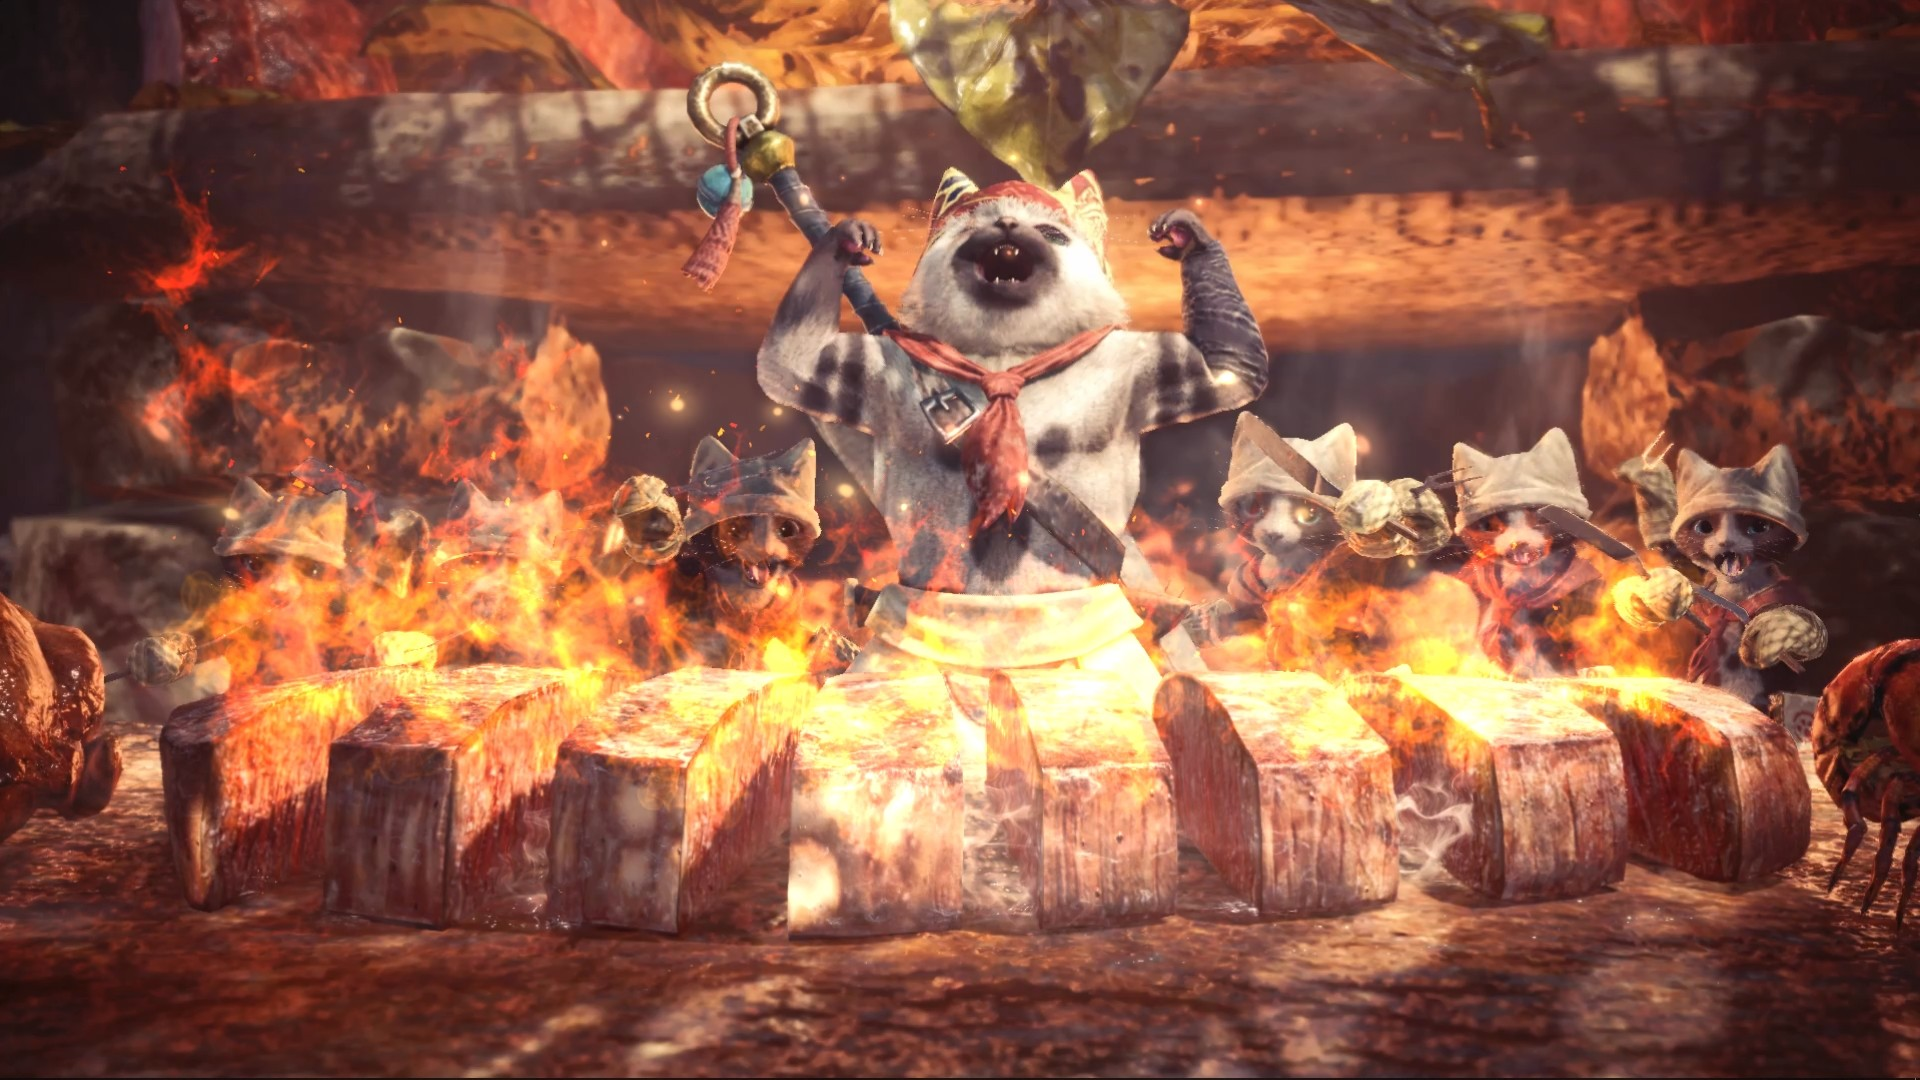 Watch YouTuber Babish make the chef's choice platter from Monster Hunter: World